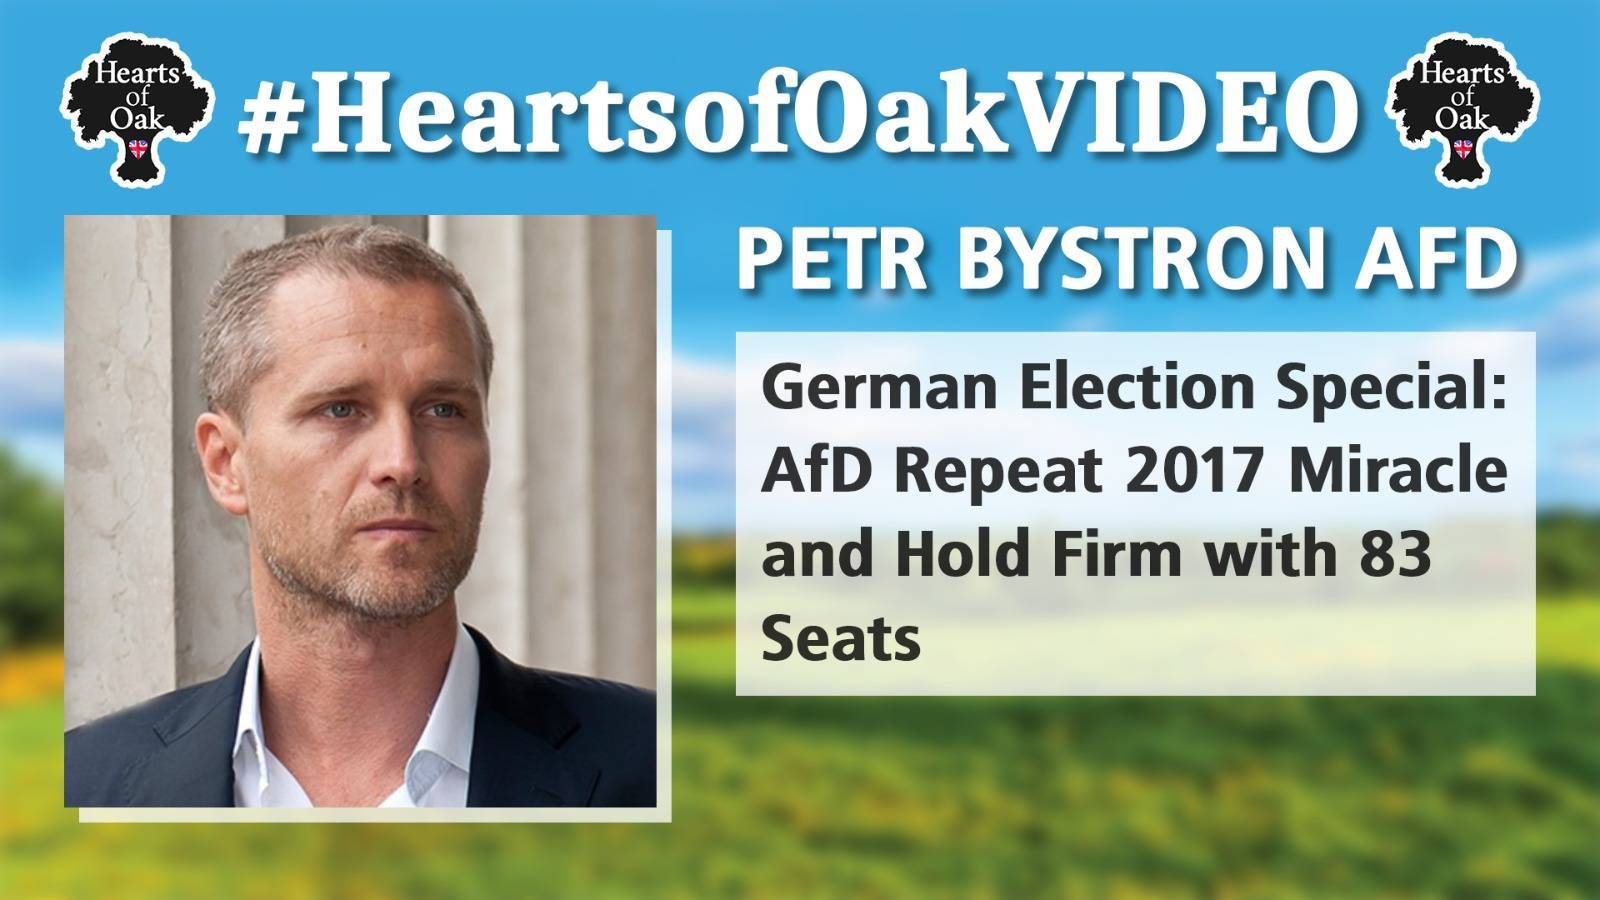 Petr Bystron: German Election Special. AfD Repeat 2017 Miracle and Hold Firm with 83 seats